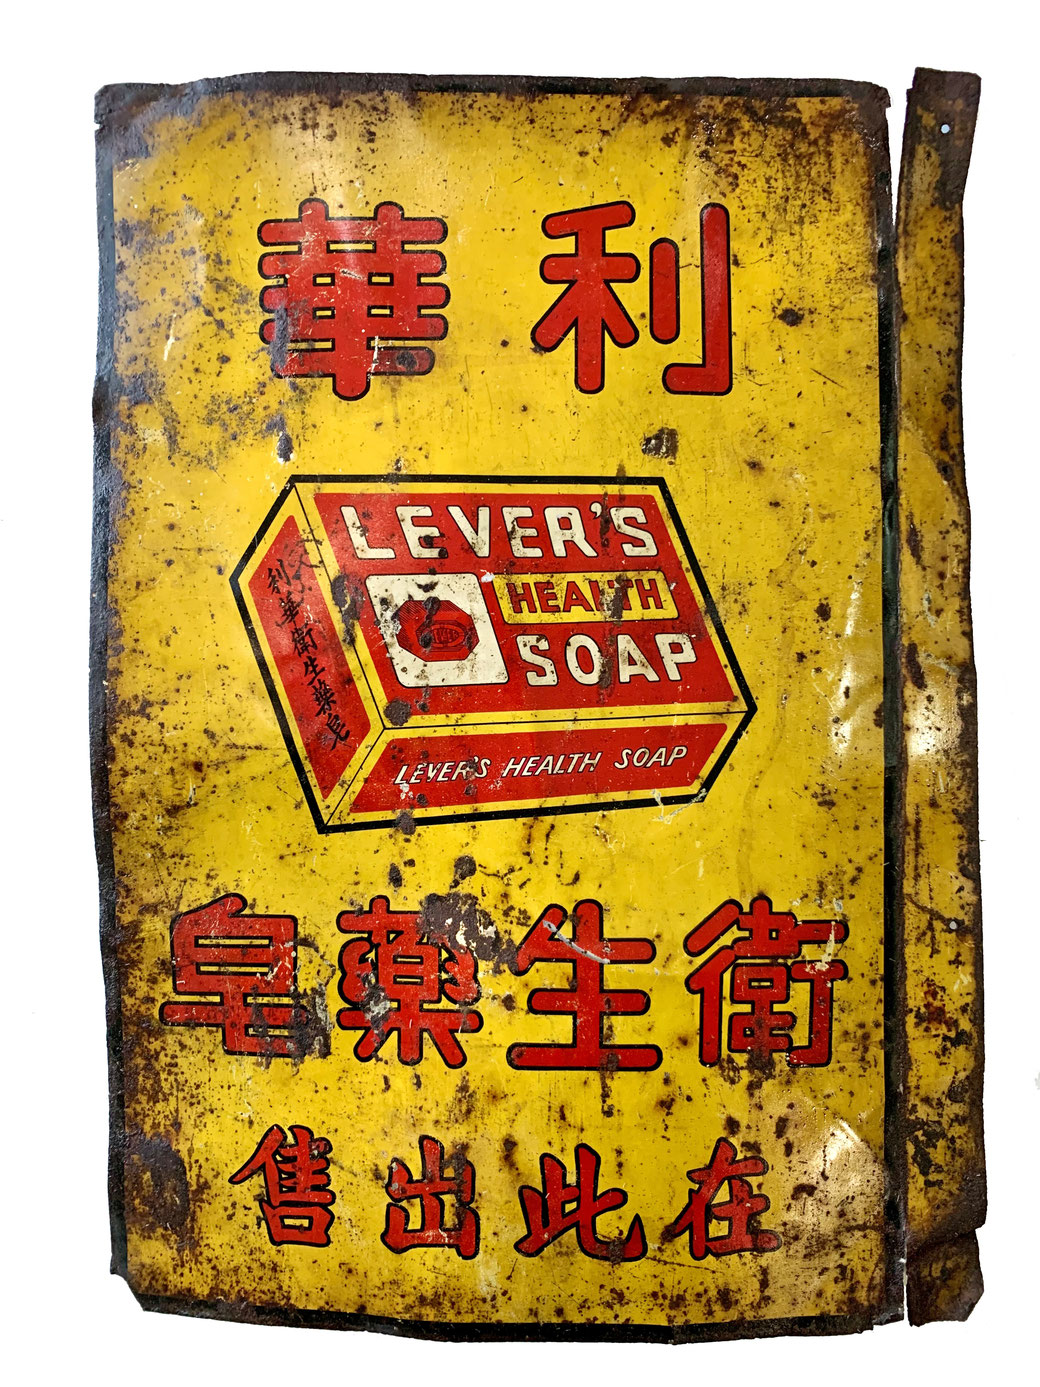 Late 1920s metal sign from the MOFBA collection: Lever's Hygiene Medical Soap sold here